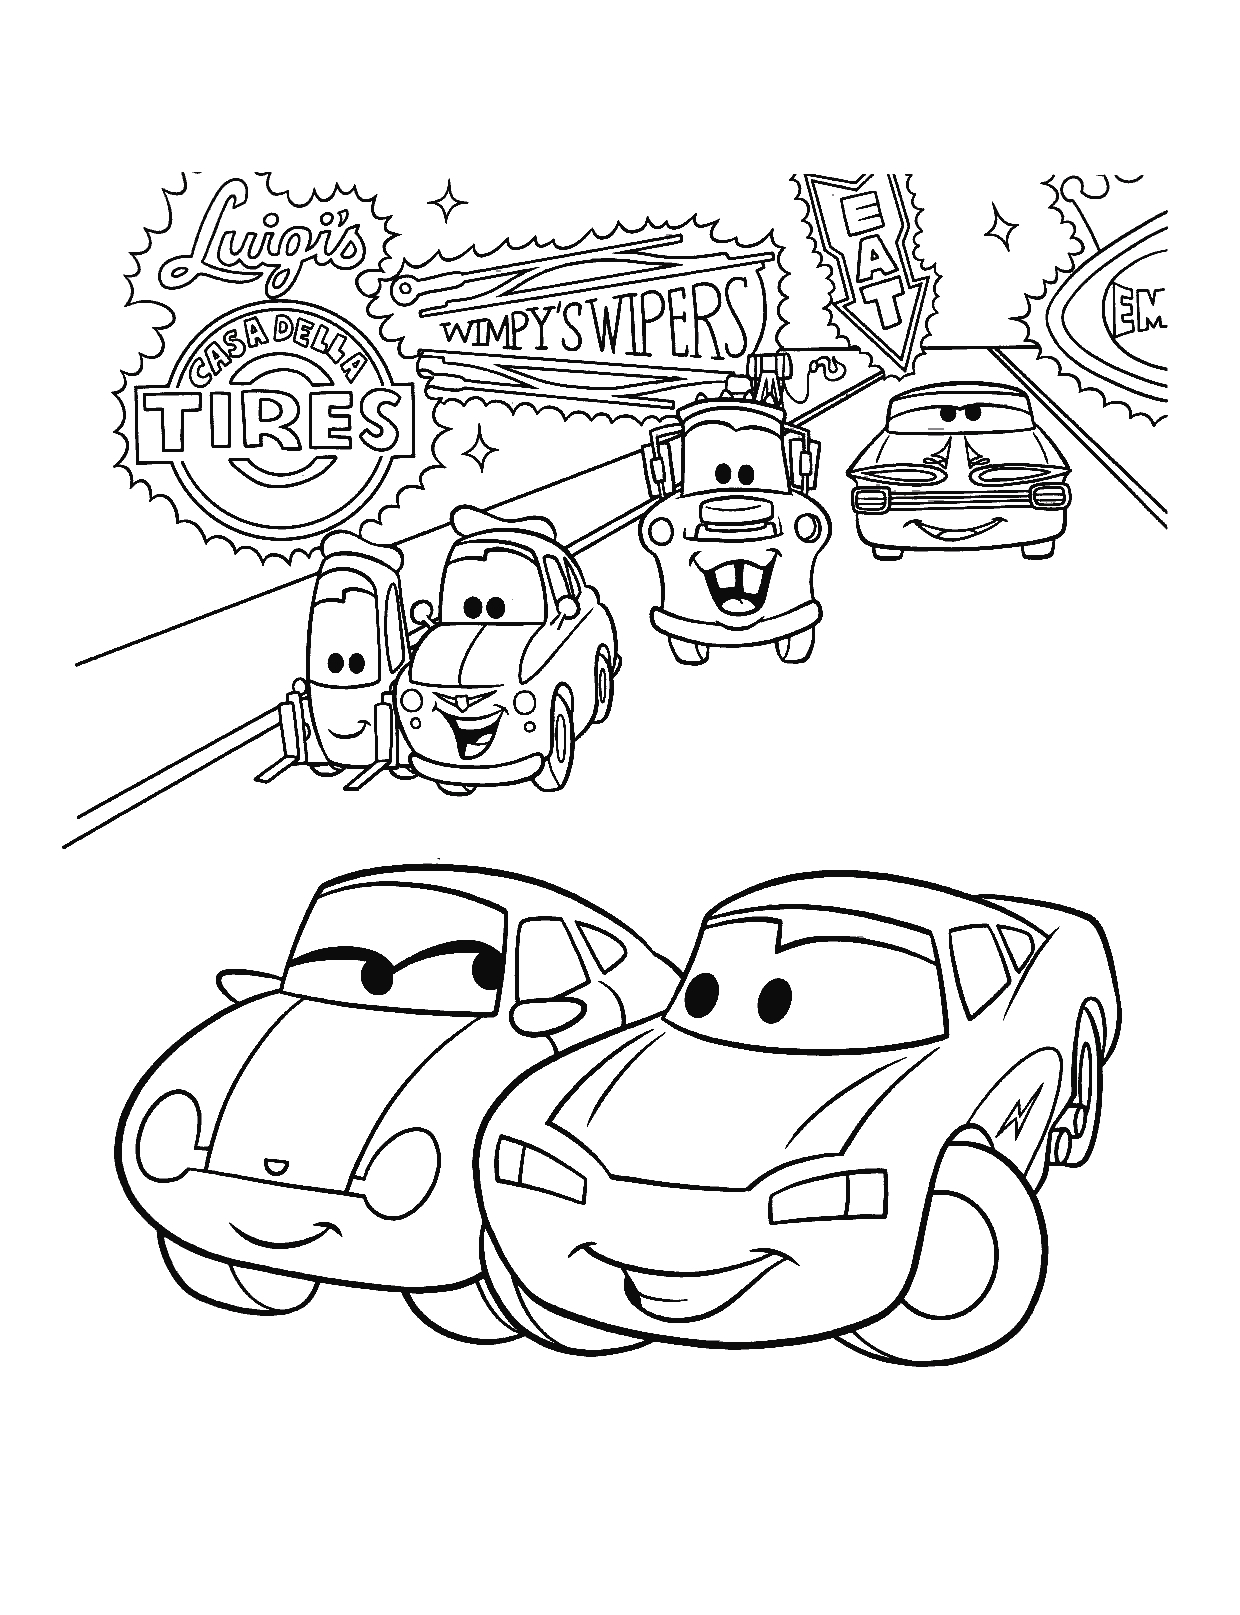 cars the movie coloring pages cars the movie coloring pages francesco bernoulli coloring cars coloring the movie pages